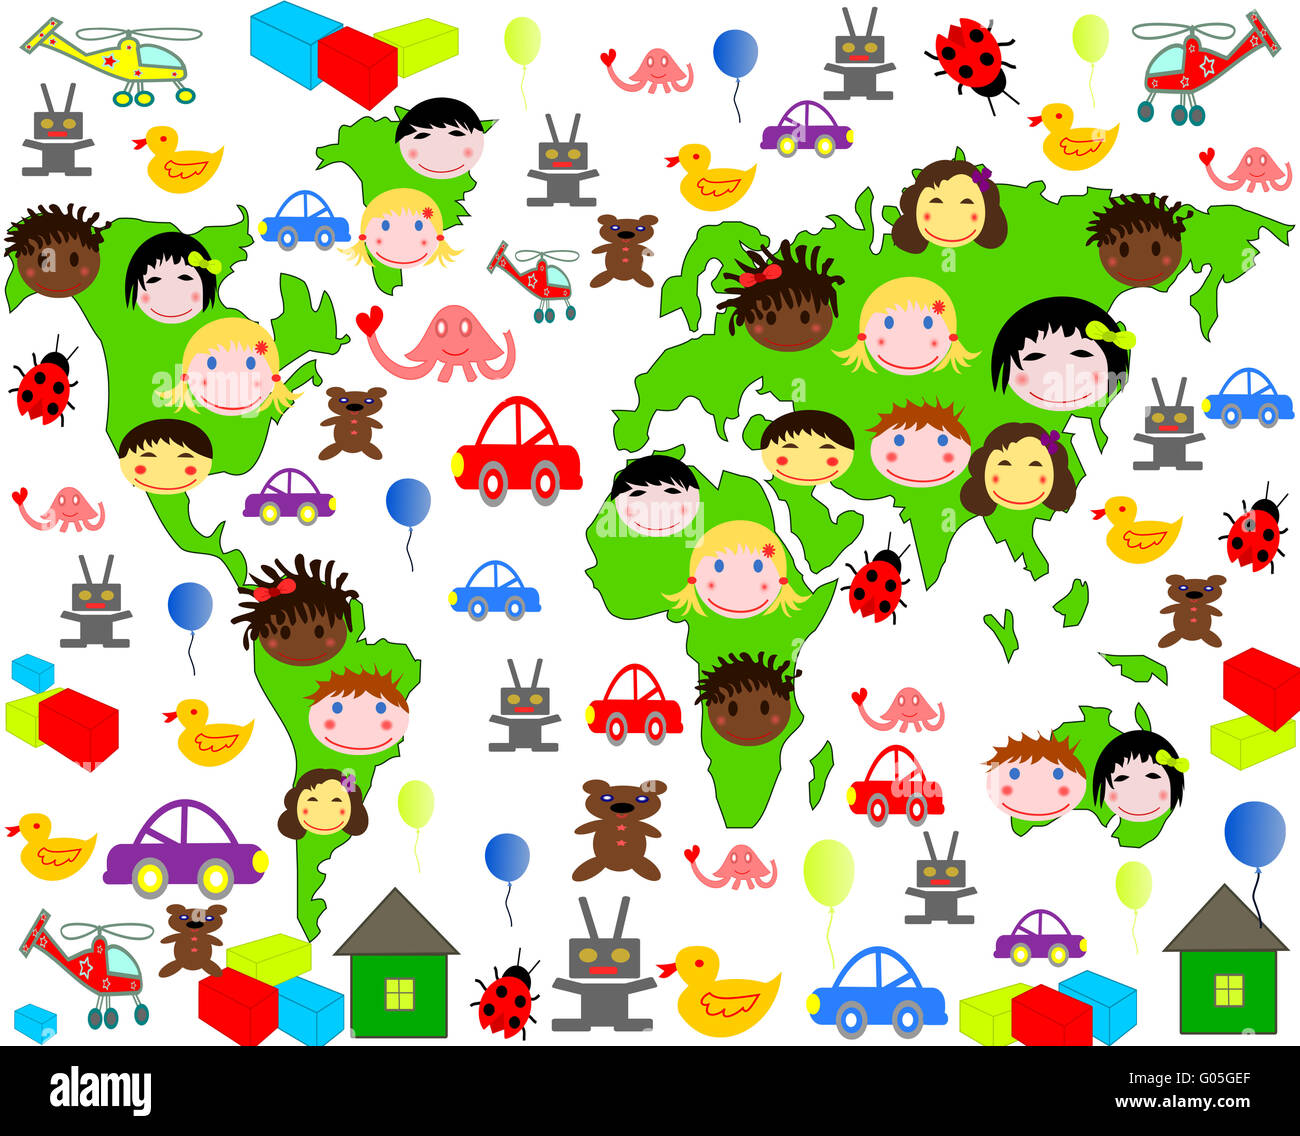 Persons of children of different races on the map - Stock Image